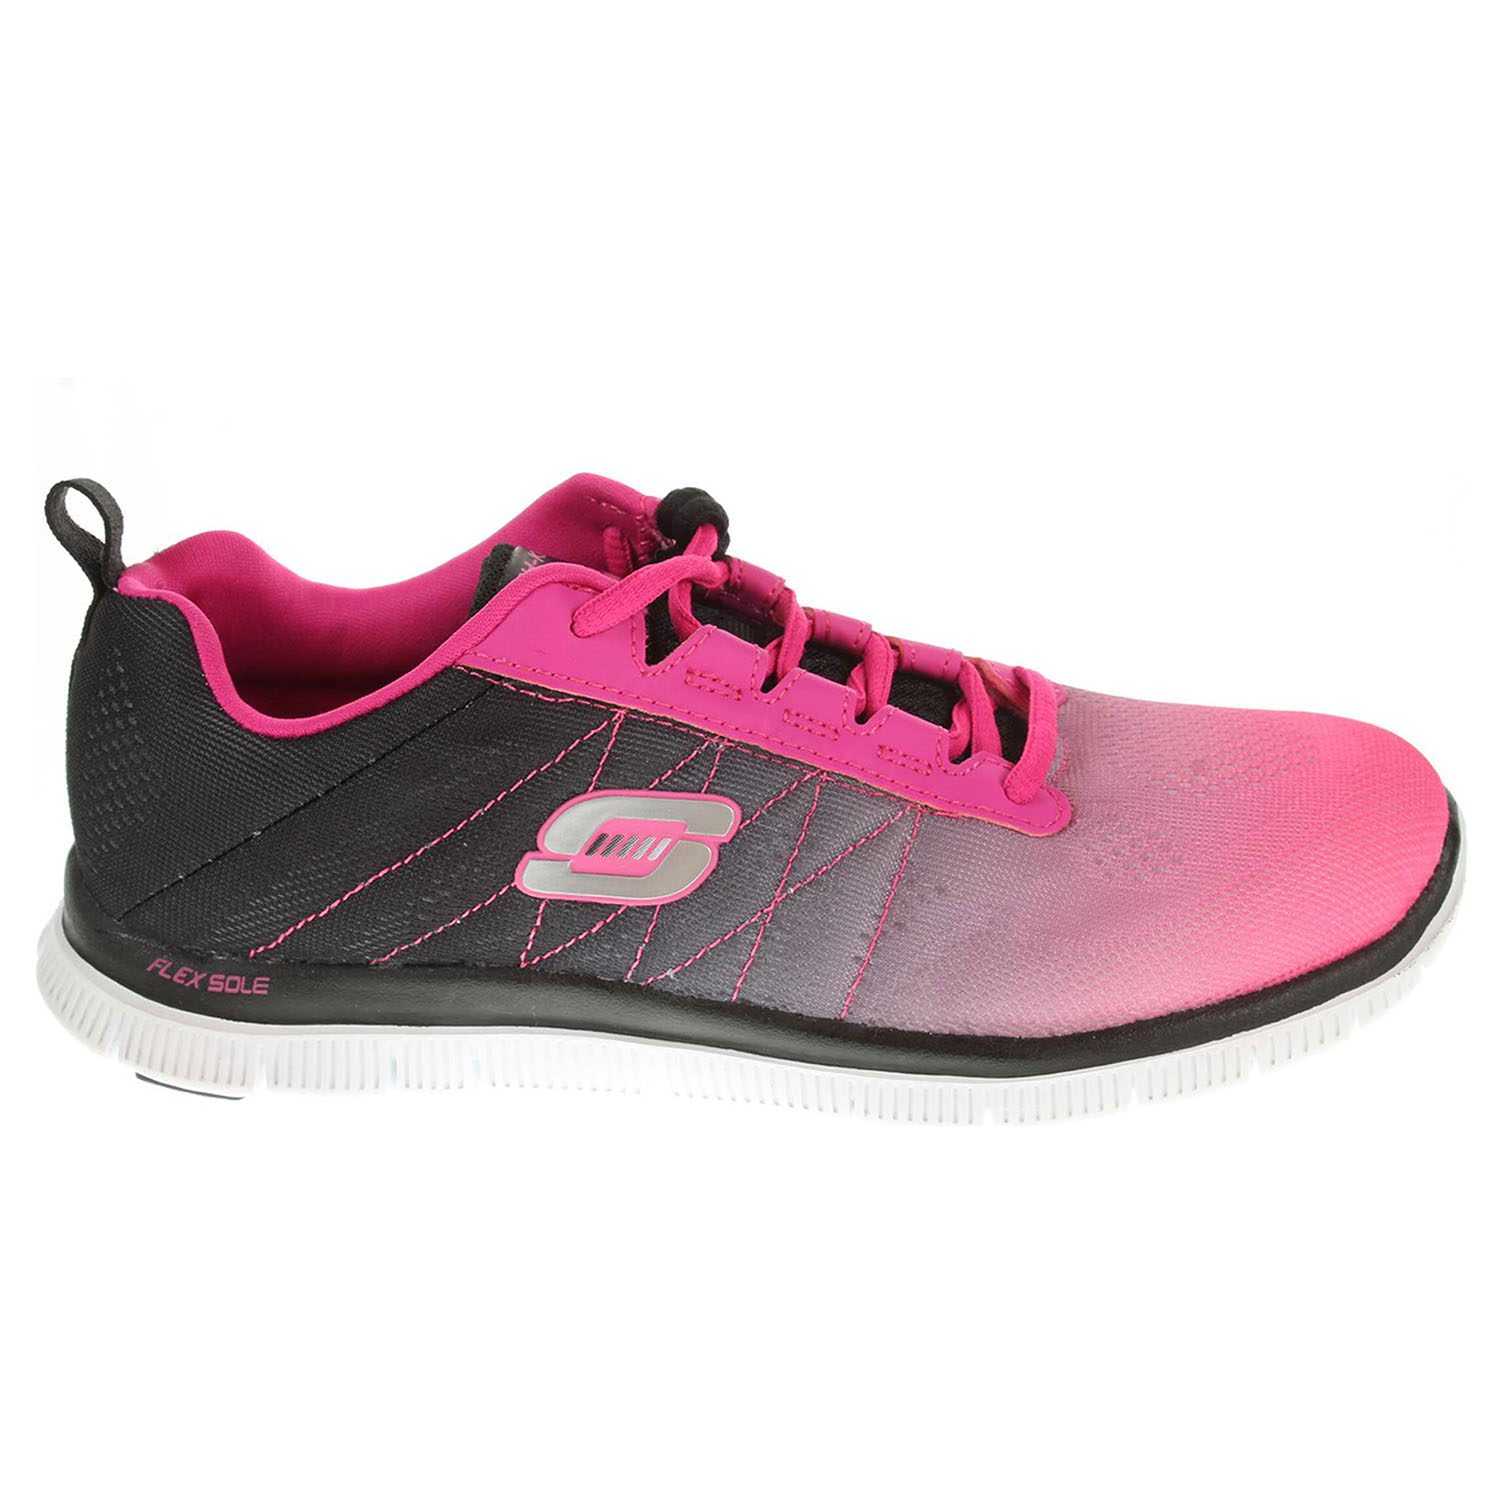 Skechers Flex Appeal New Arrival hot pink 41